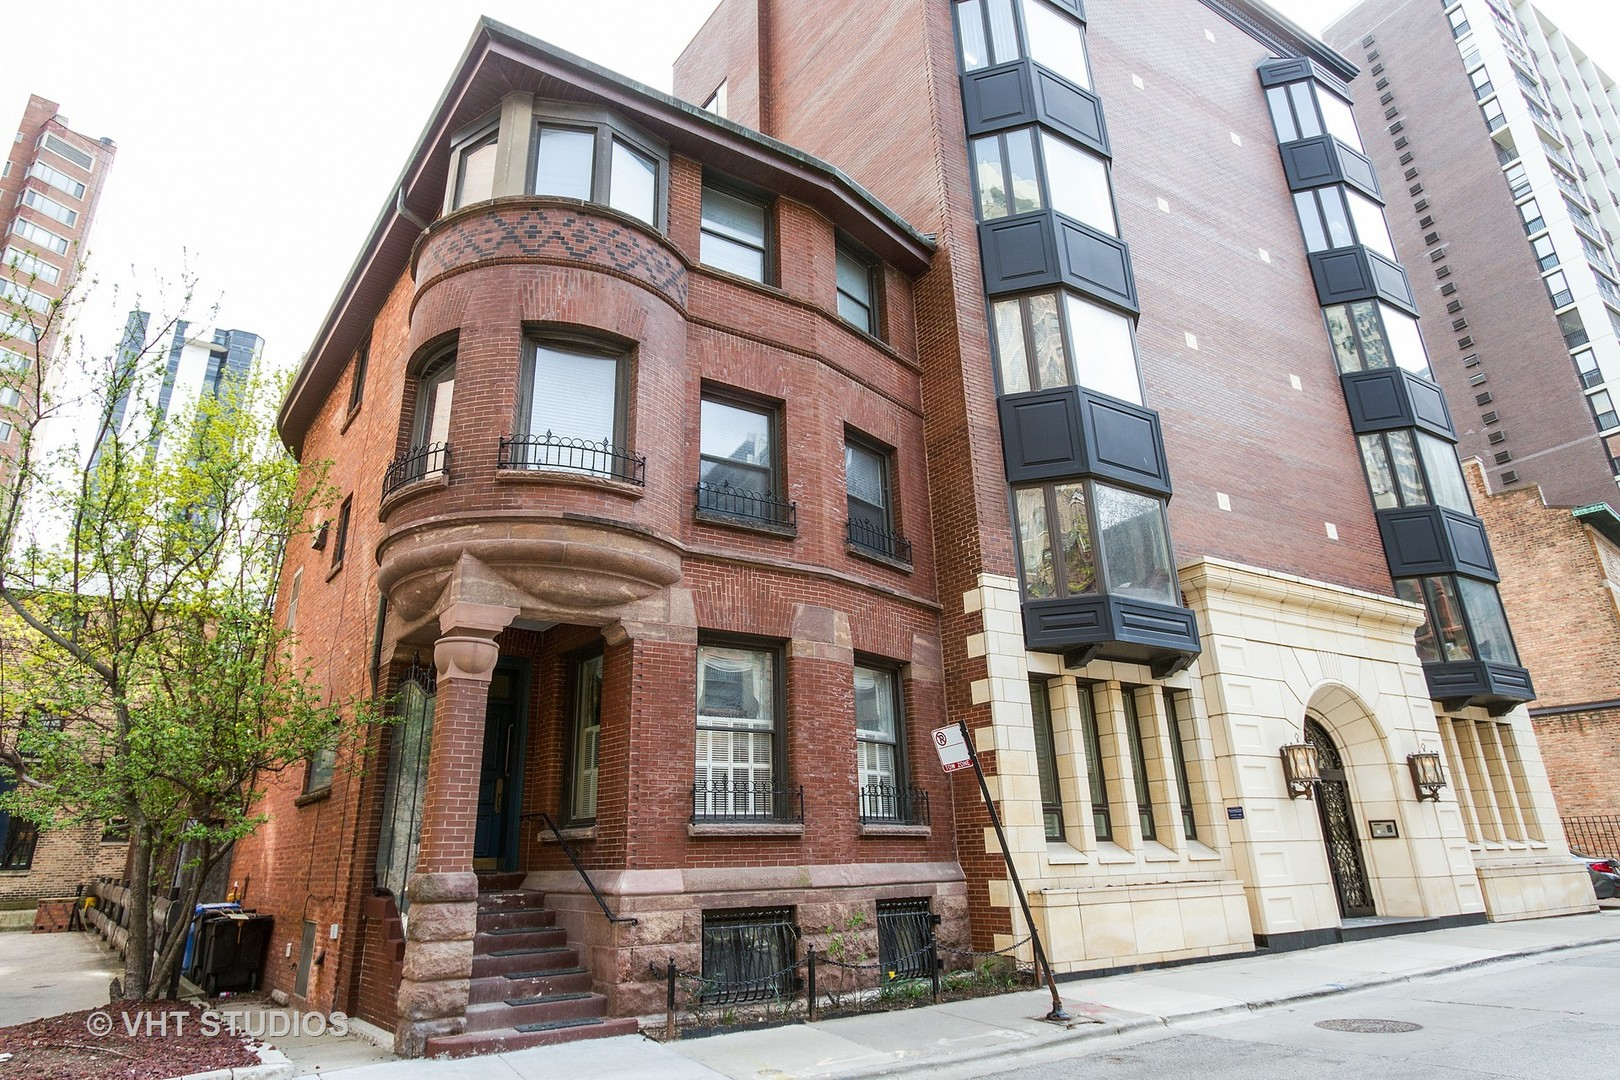 Property for sale at 41 East Schiller Street, Chicago-Near North Side,  IL 60610